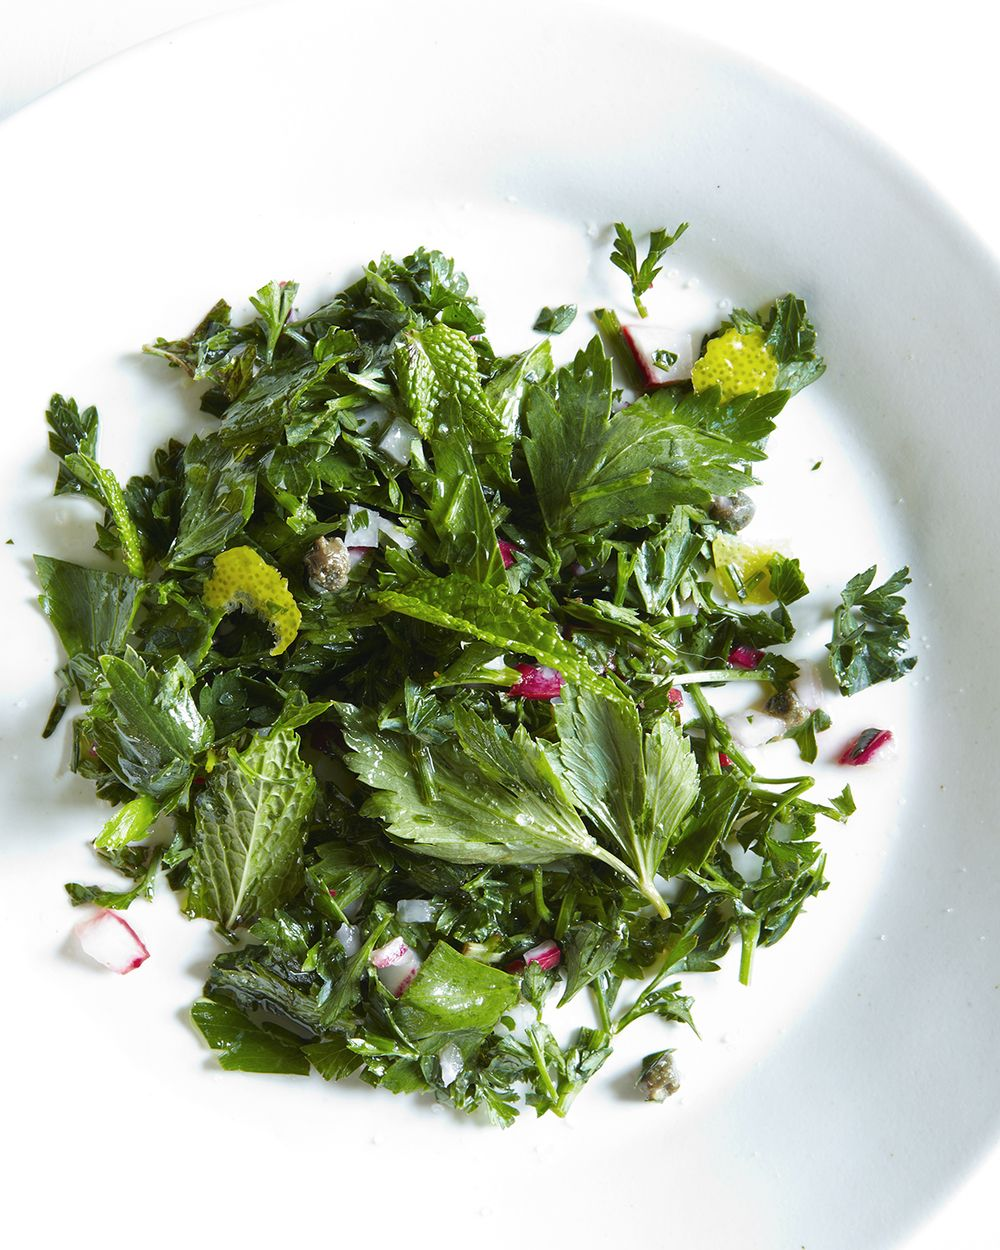 groundhog day celery leaf and herb salad. — HUNGRY GHOST